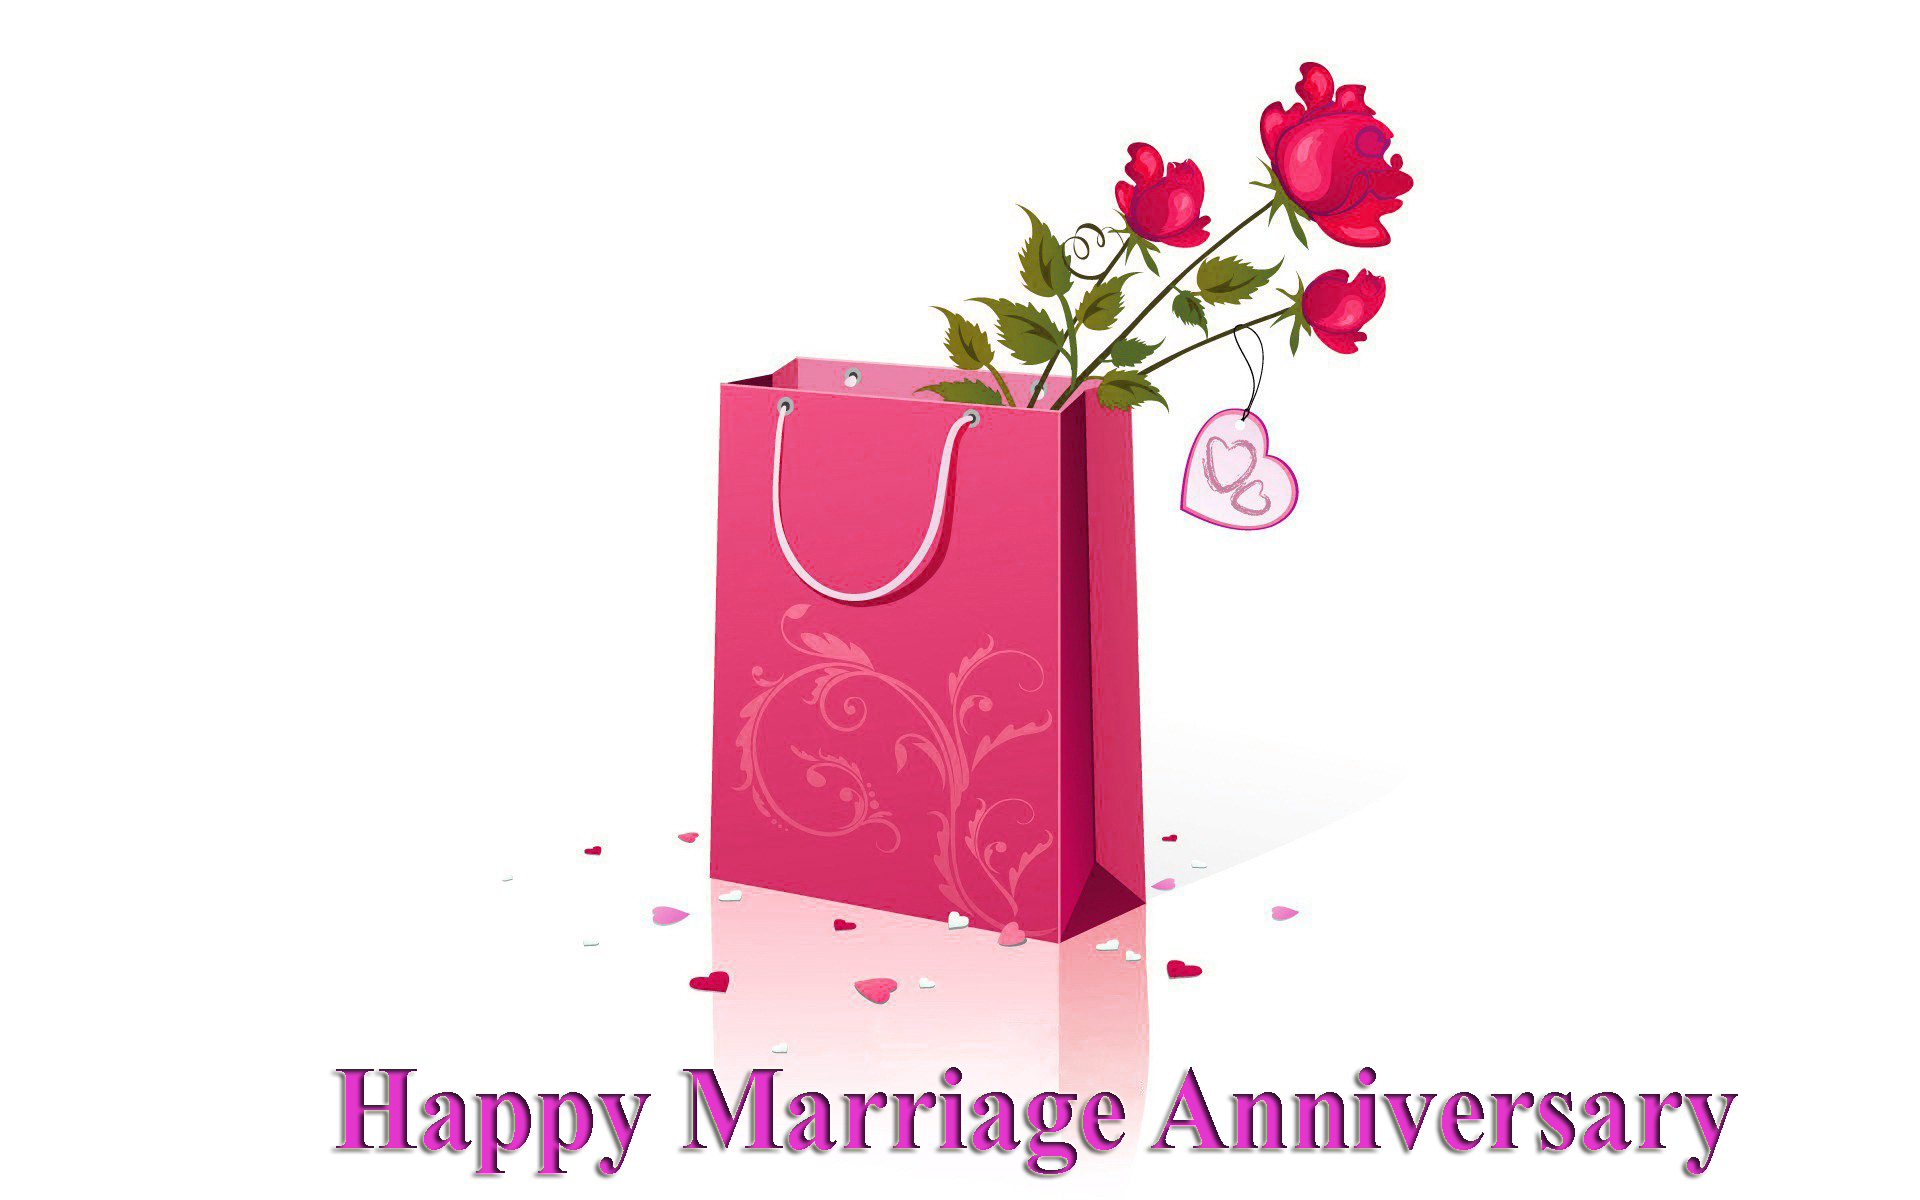 Best Happy Wedding Anniversary Wishes Images Cards ...